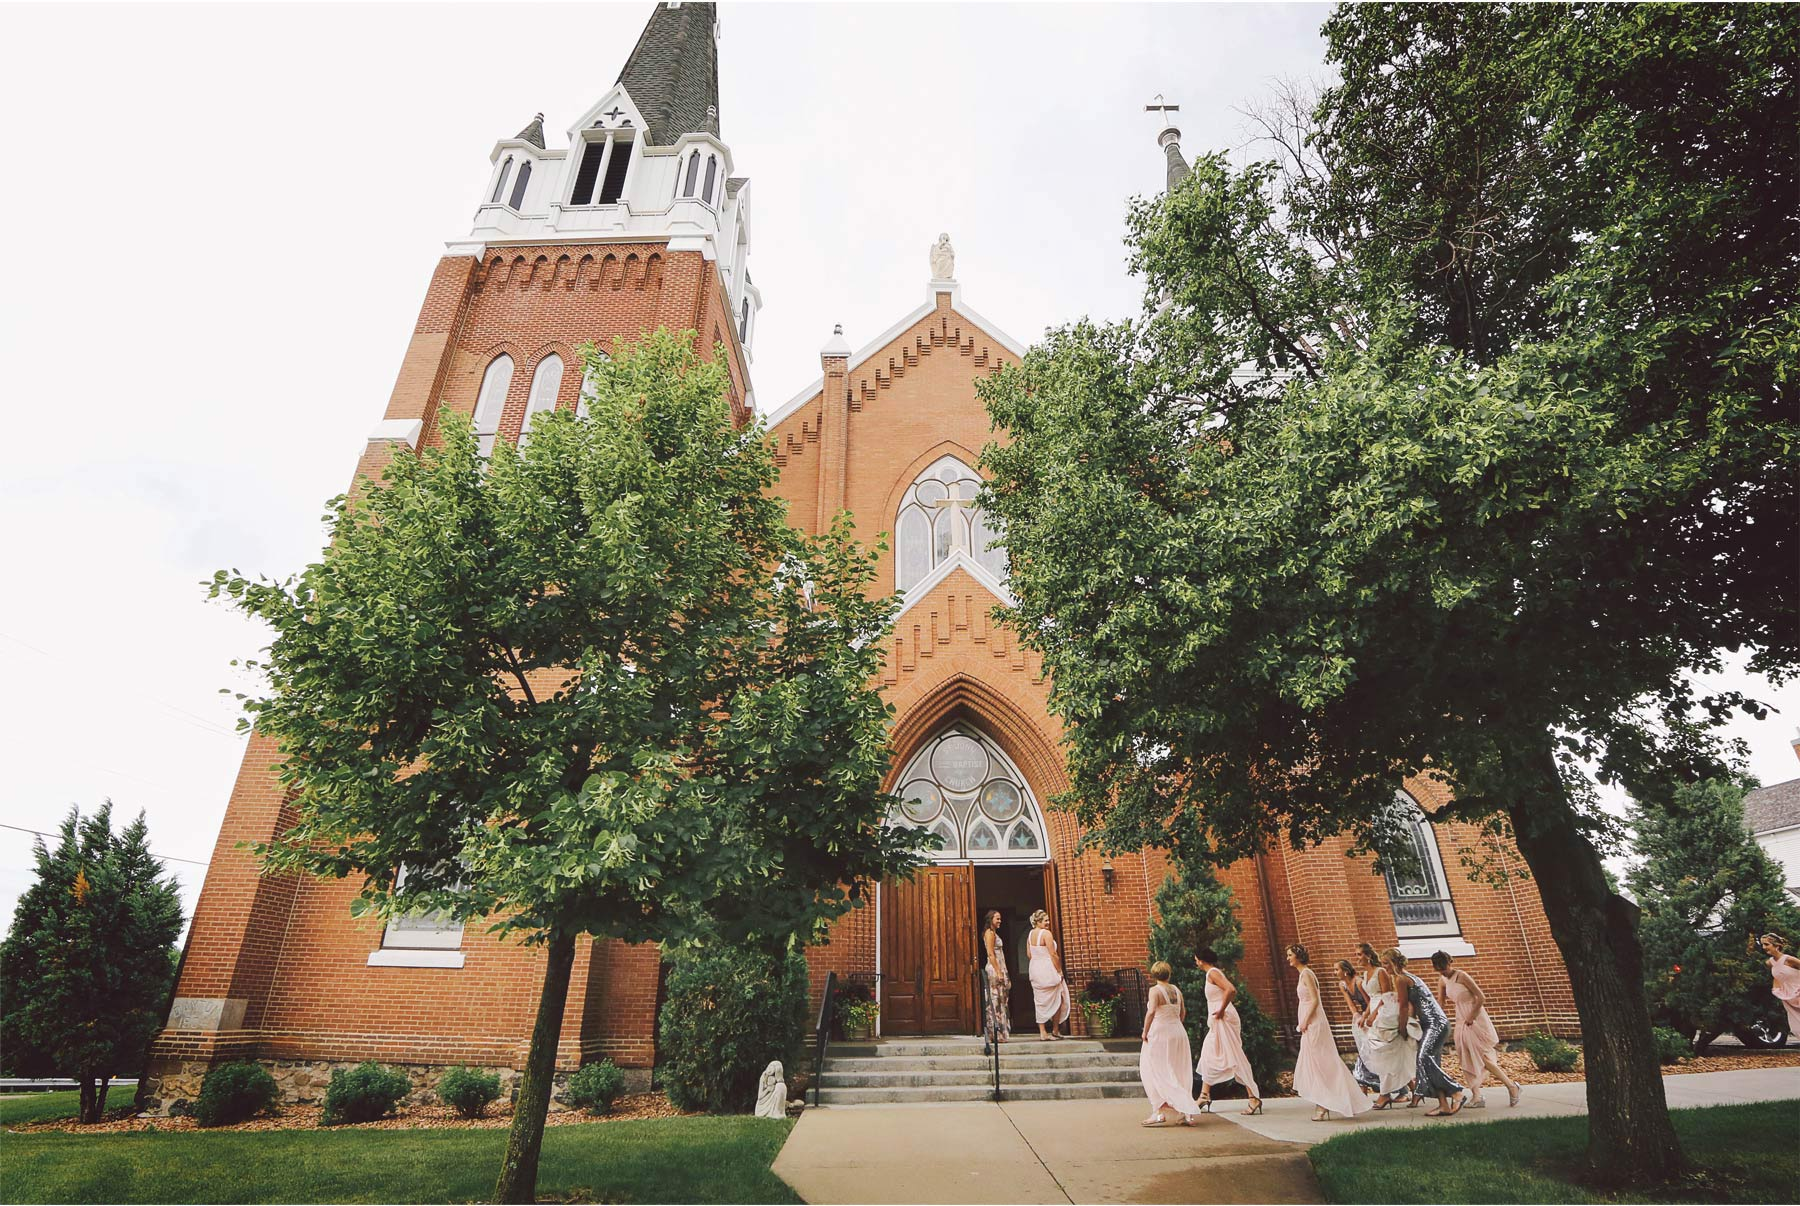 02-Minneapolis-Minnesota-Wedding-Photography-by-Vick-Photography-St.-John-the-Baptist-Church-Bride-Elizabeth-and-William.jpg